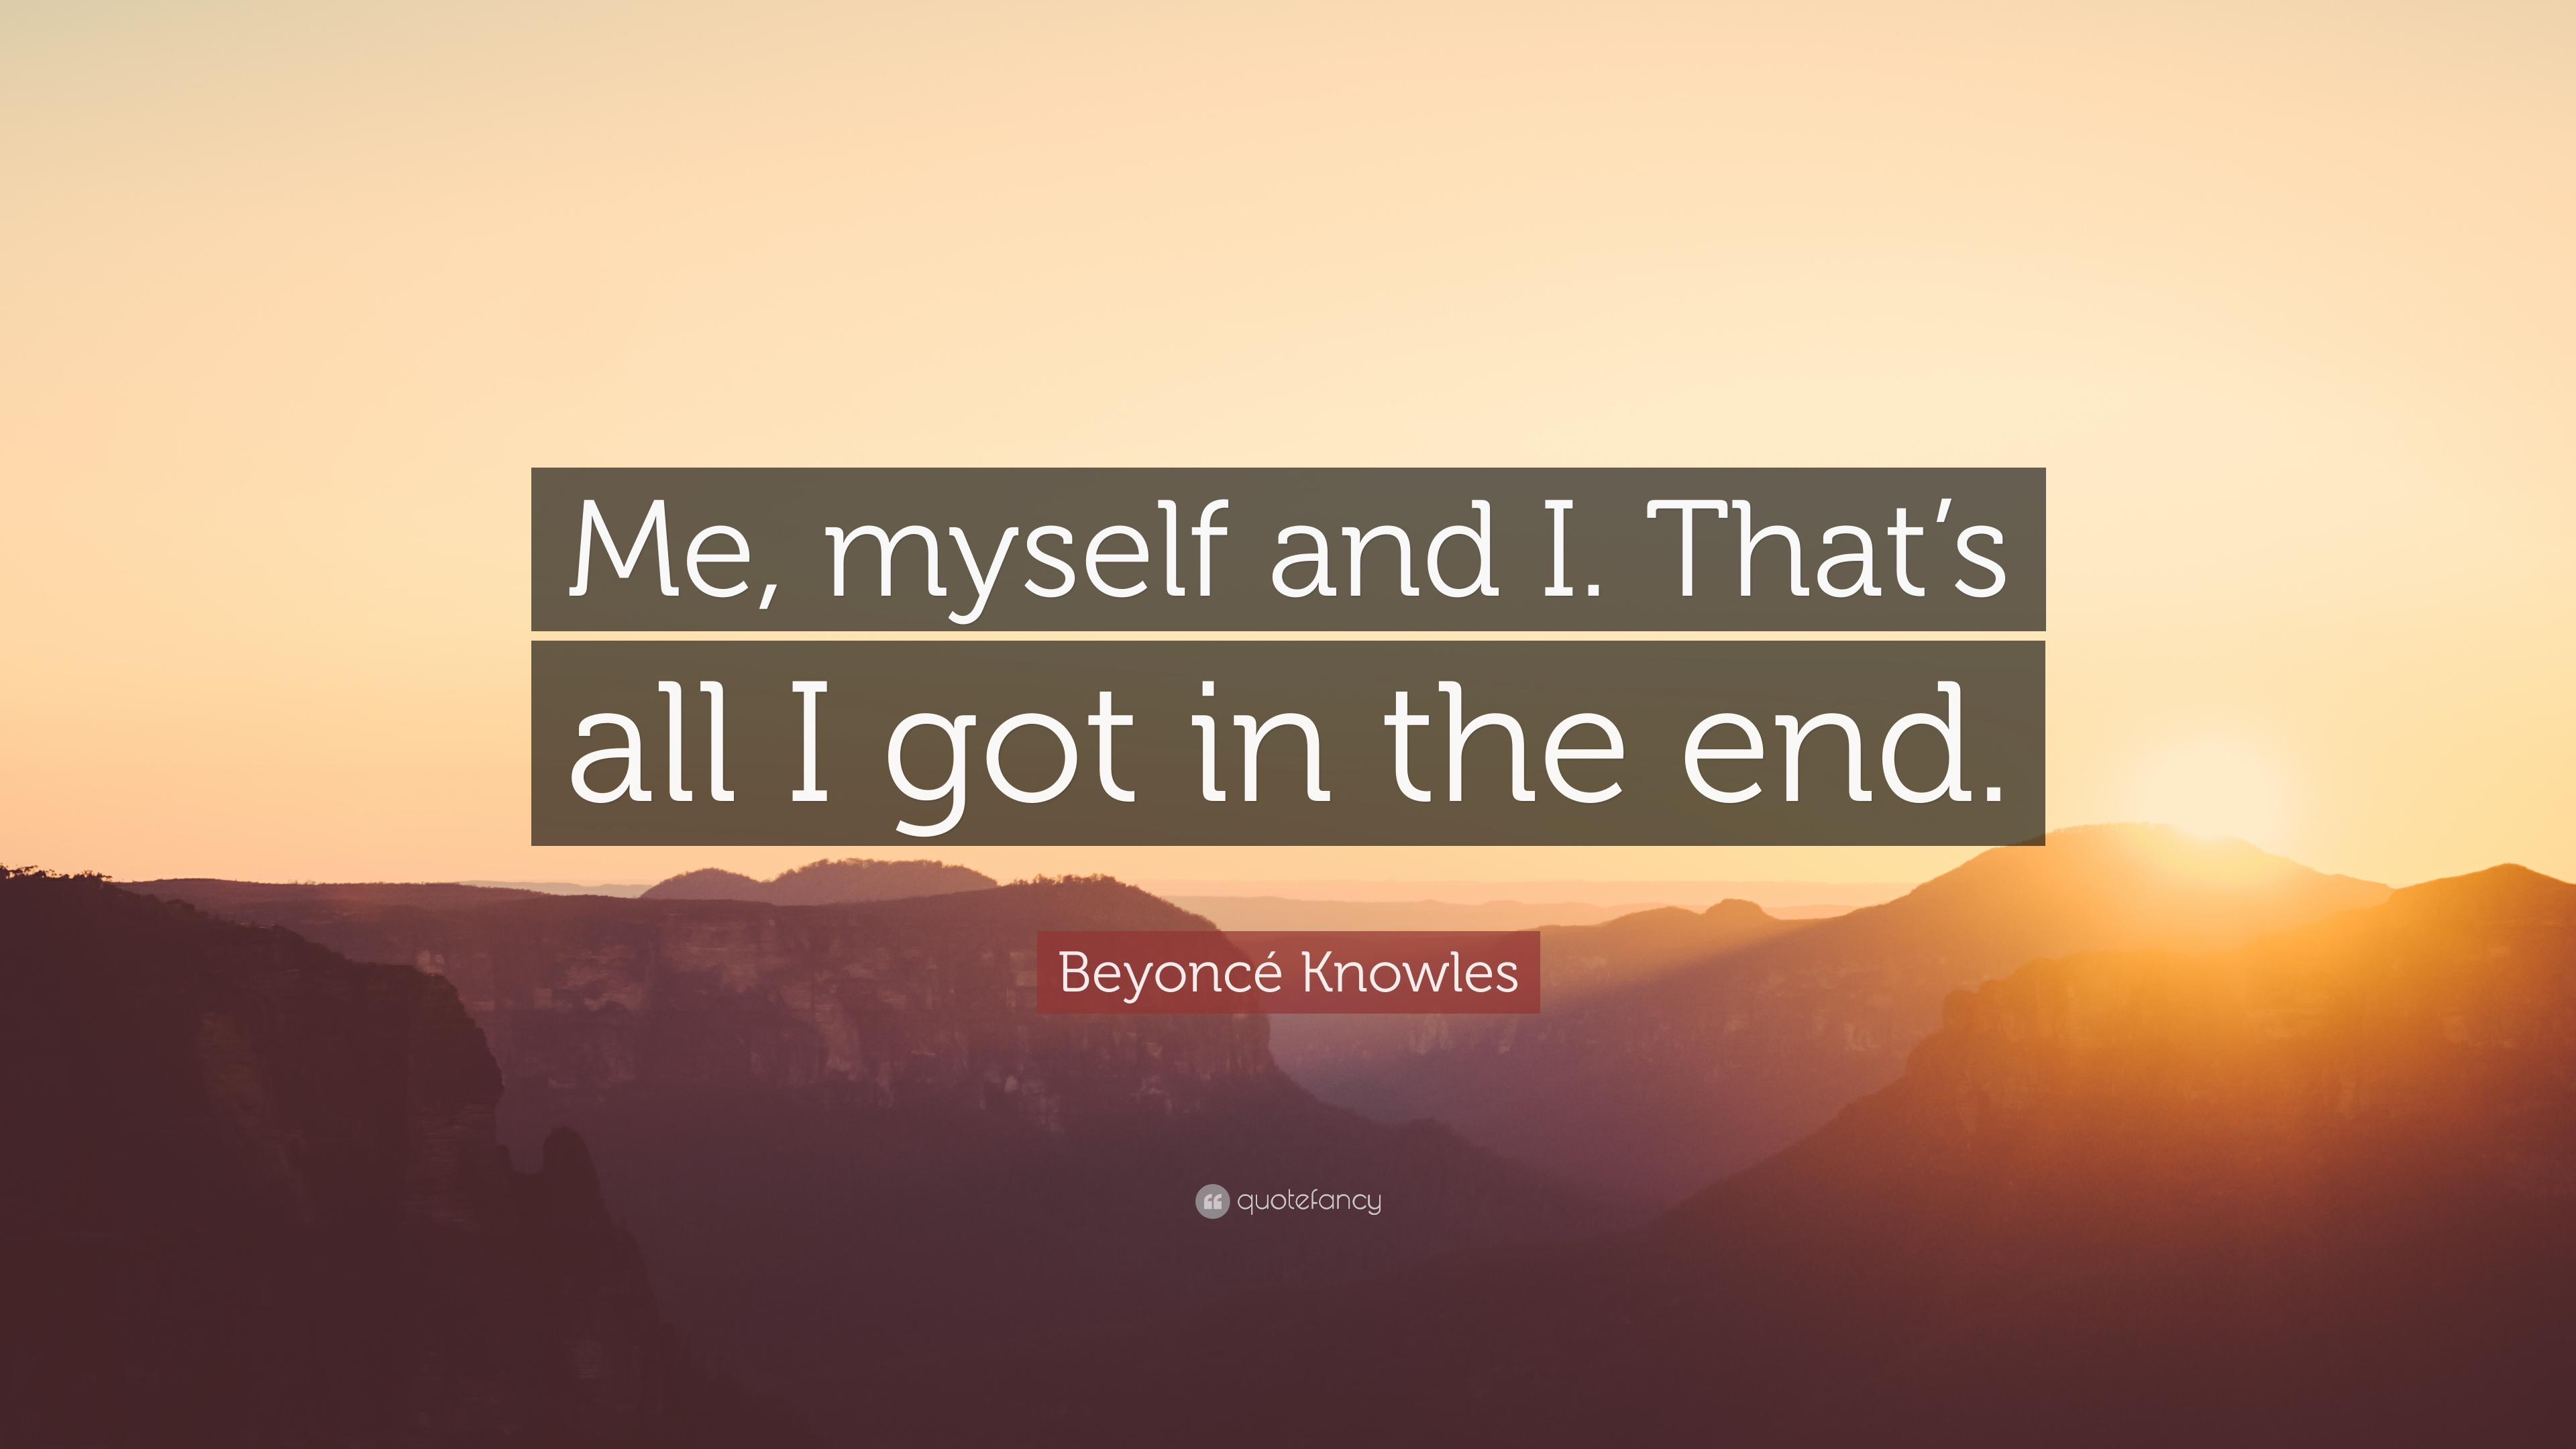 Beyonce Knowles Quote Me Myself And I That S All I Got In The